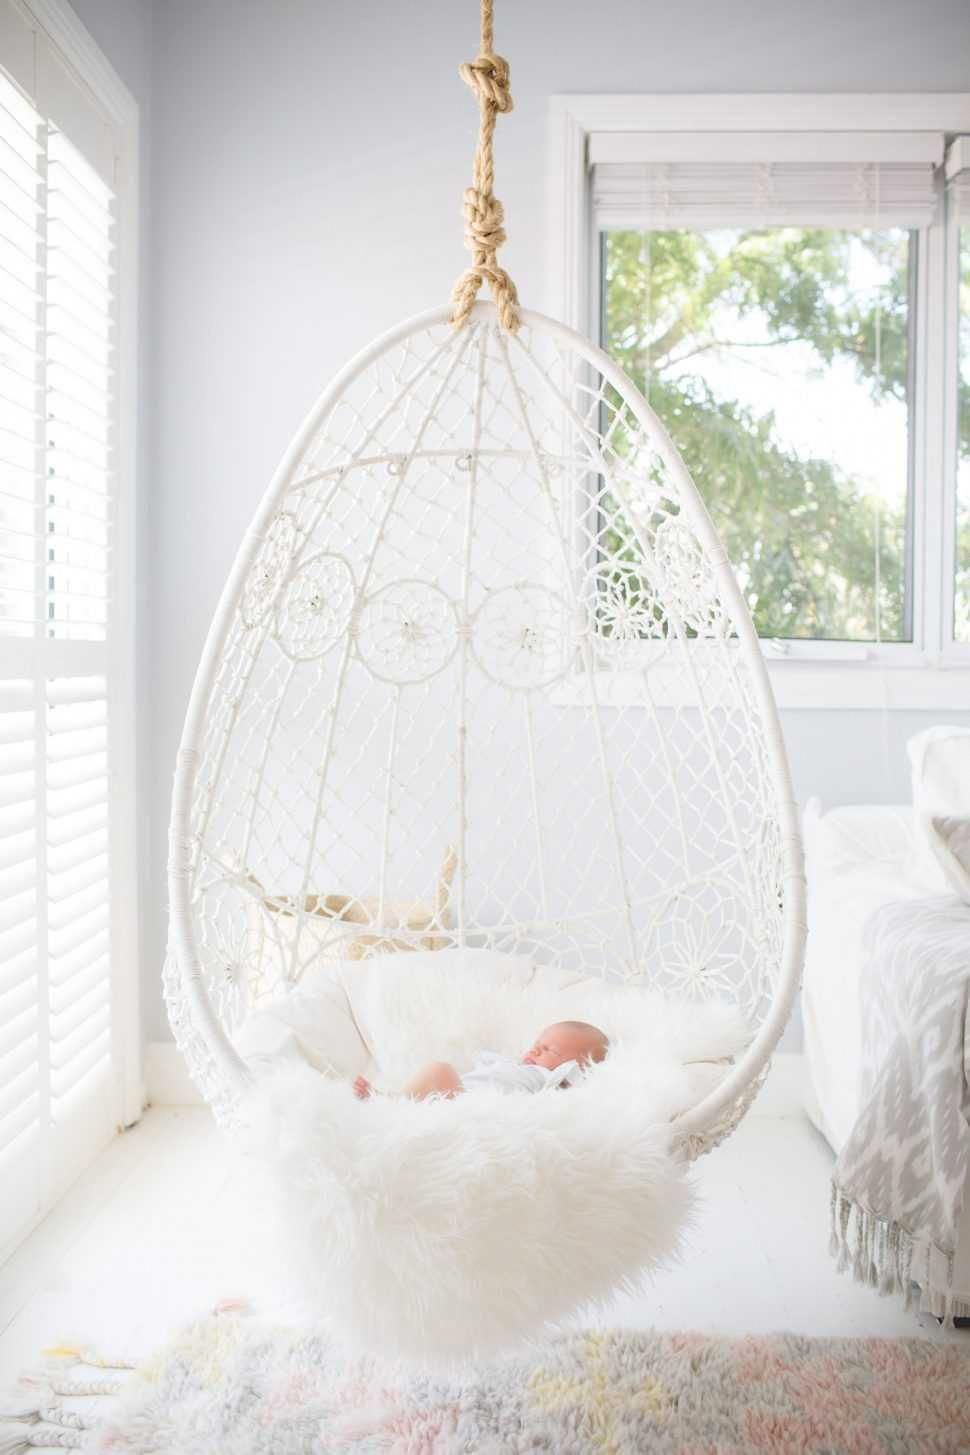 Bedroom Furniture Cheap Hanging Chair For Bedroom Charming Cheap Hanging Chair For Bedroom Inspirations Also C Girl Room Room Inspiration Girl Bedroom Designs